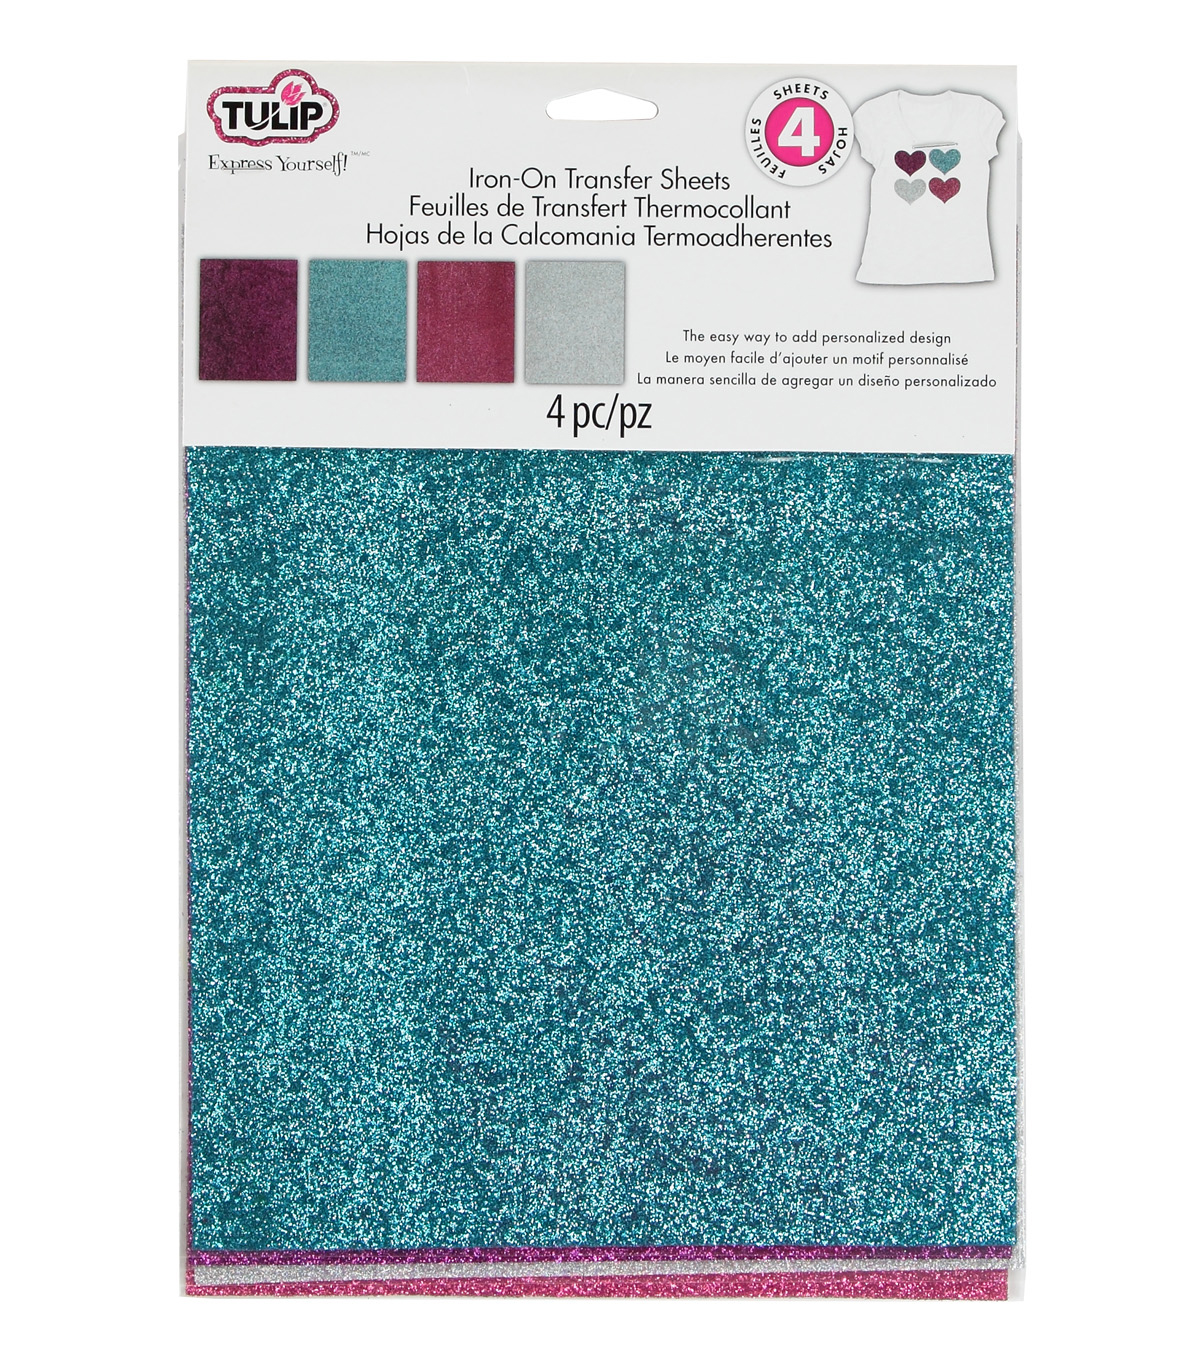 Tulip Glam-It-Up! Iron-On Shimmer Transfer Sheets Urban